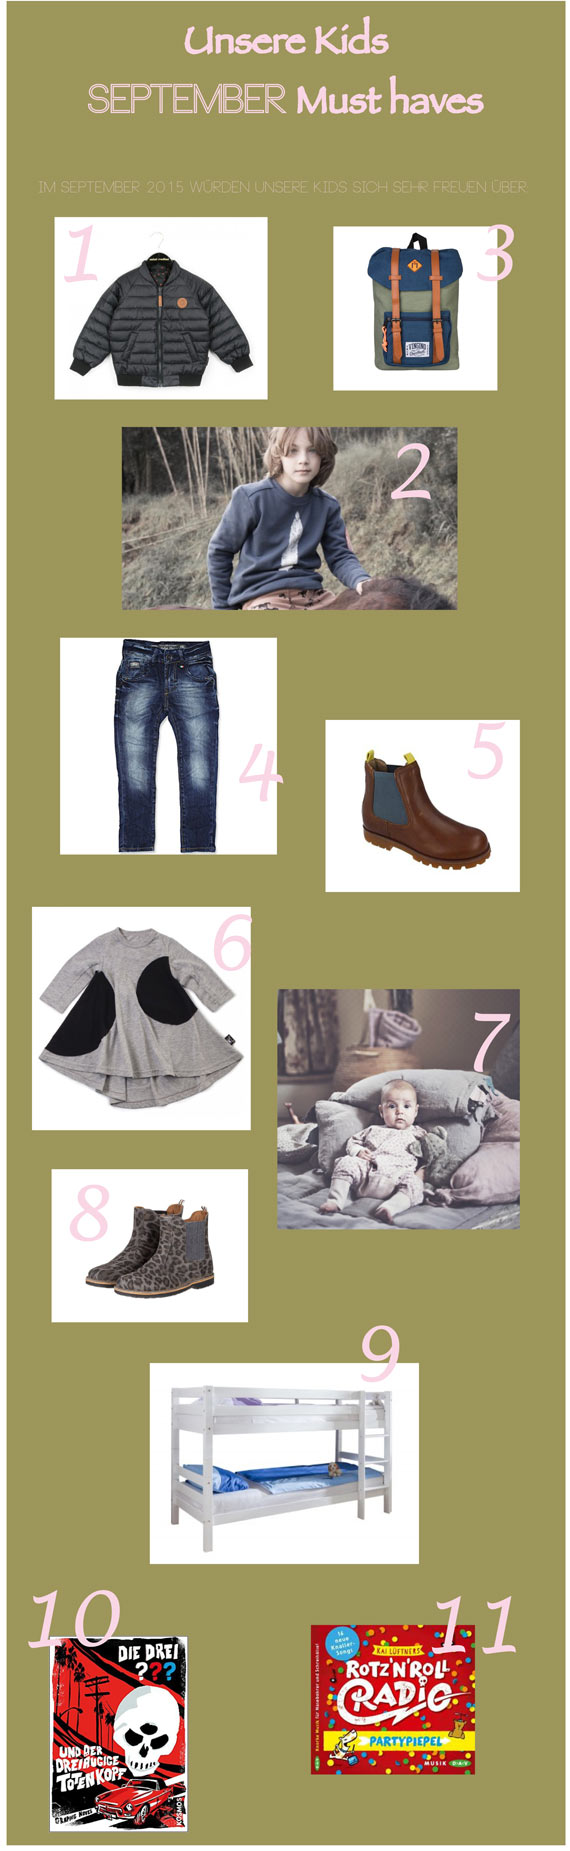 September-Kids-Must-haves-2015